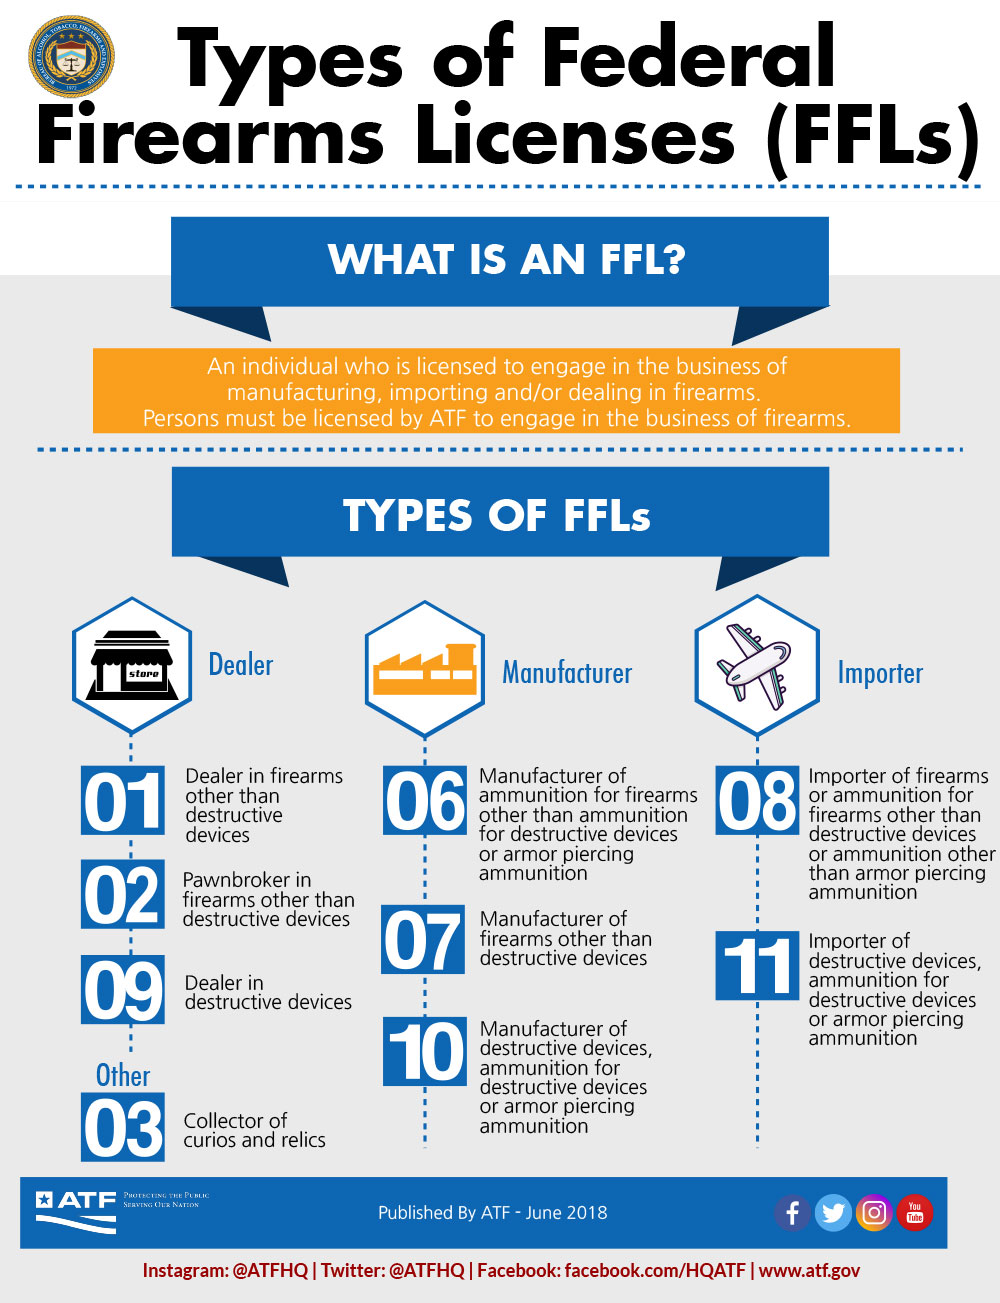 Types of Federal Firearms Licensees (FFLs)